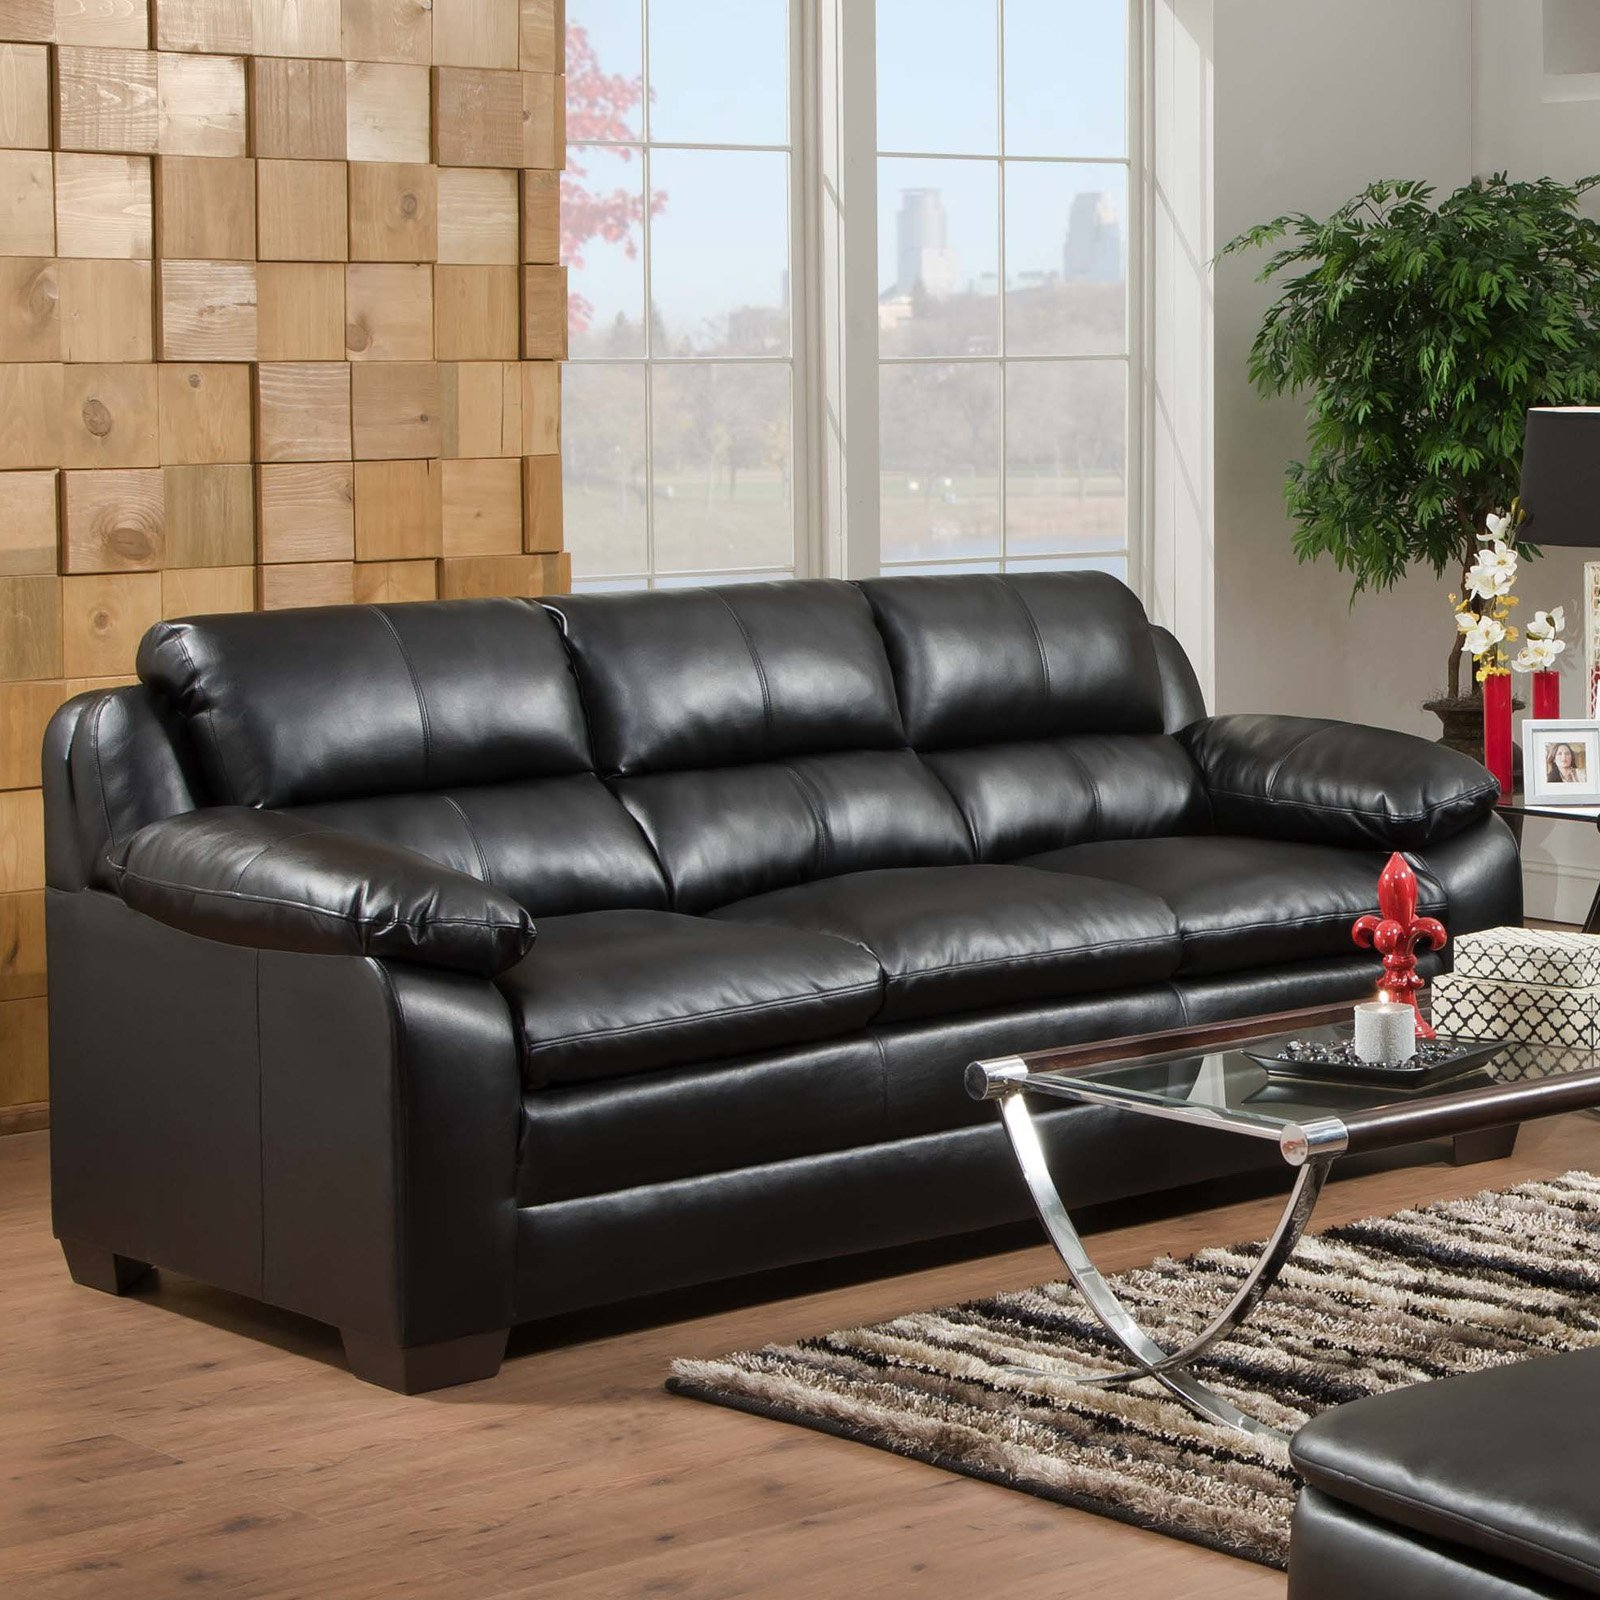 Simmons Soho Onyx Leather Sofa   Walmart.com